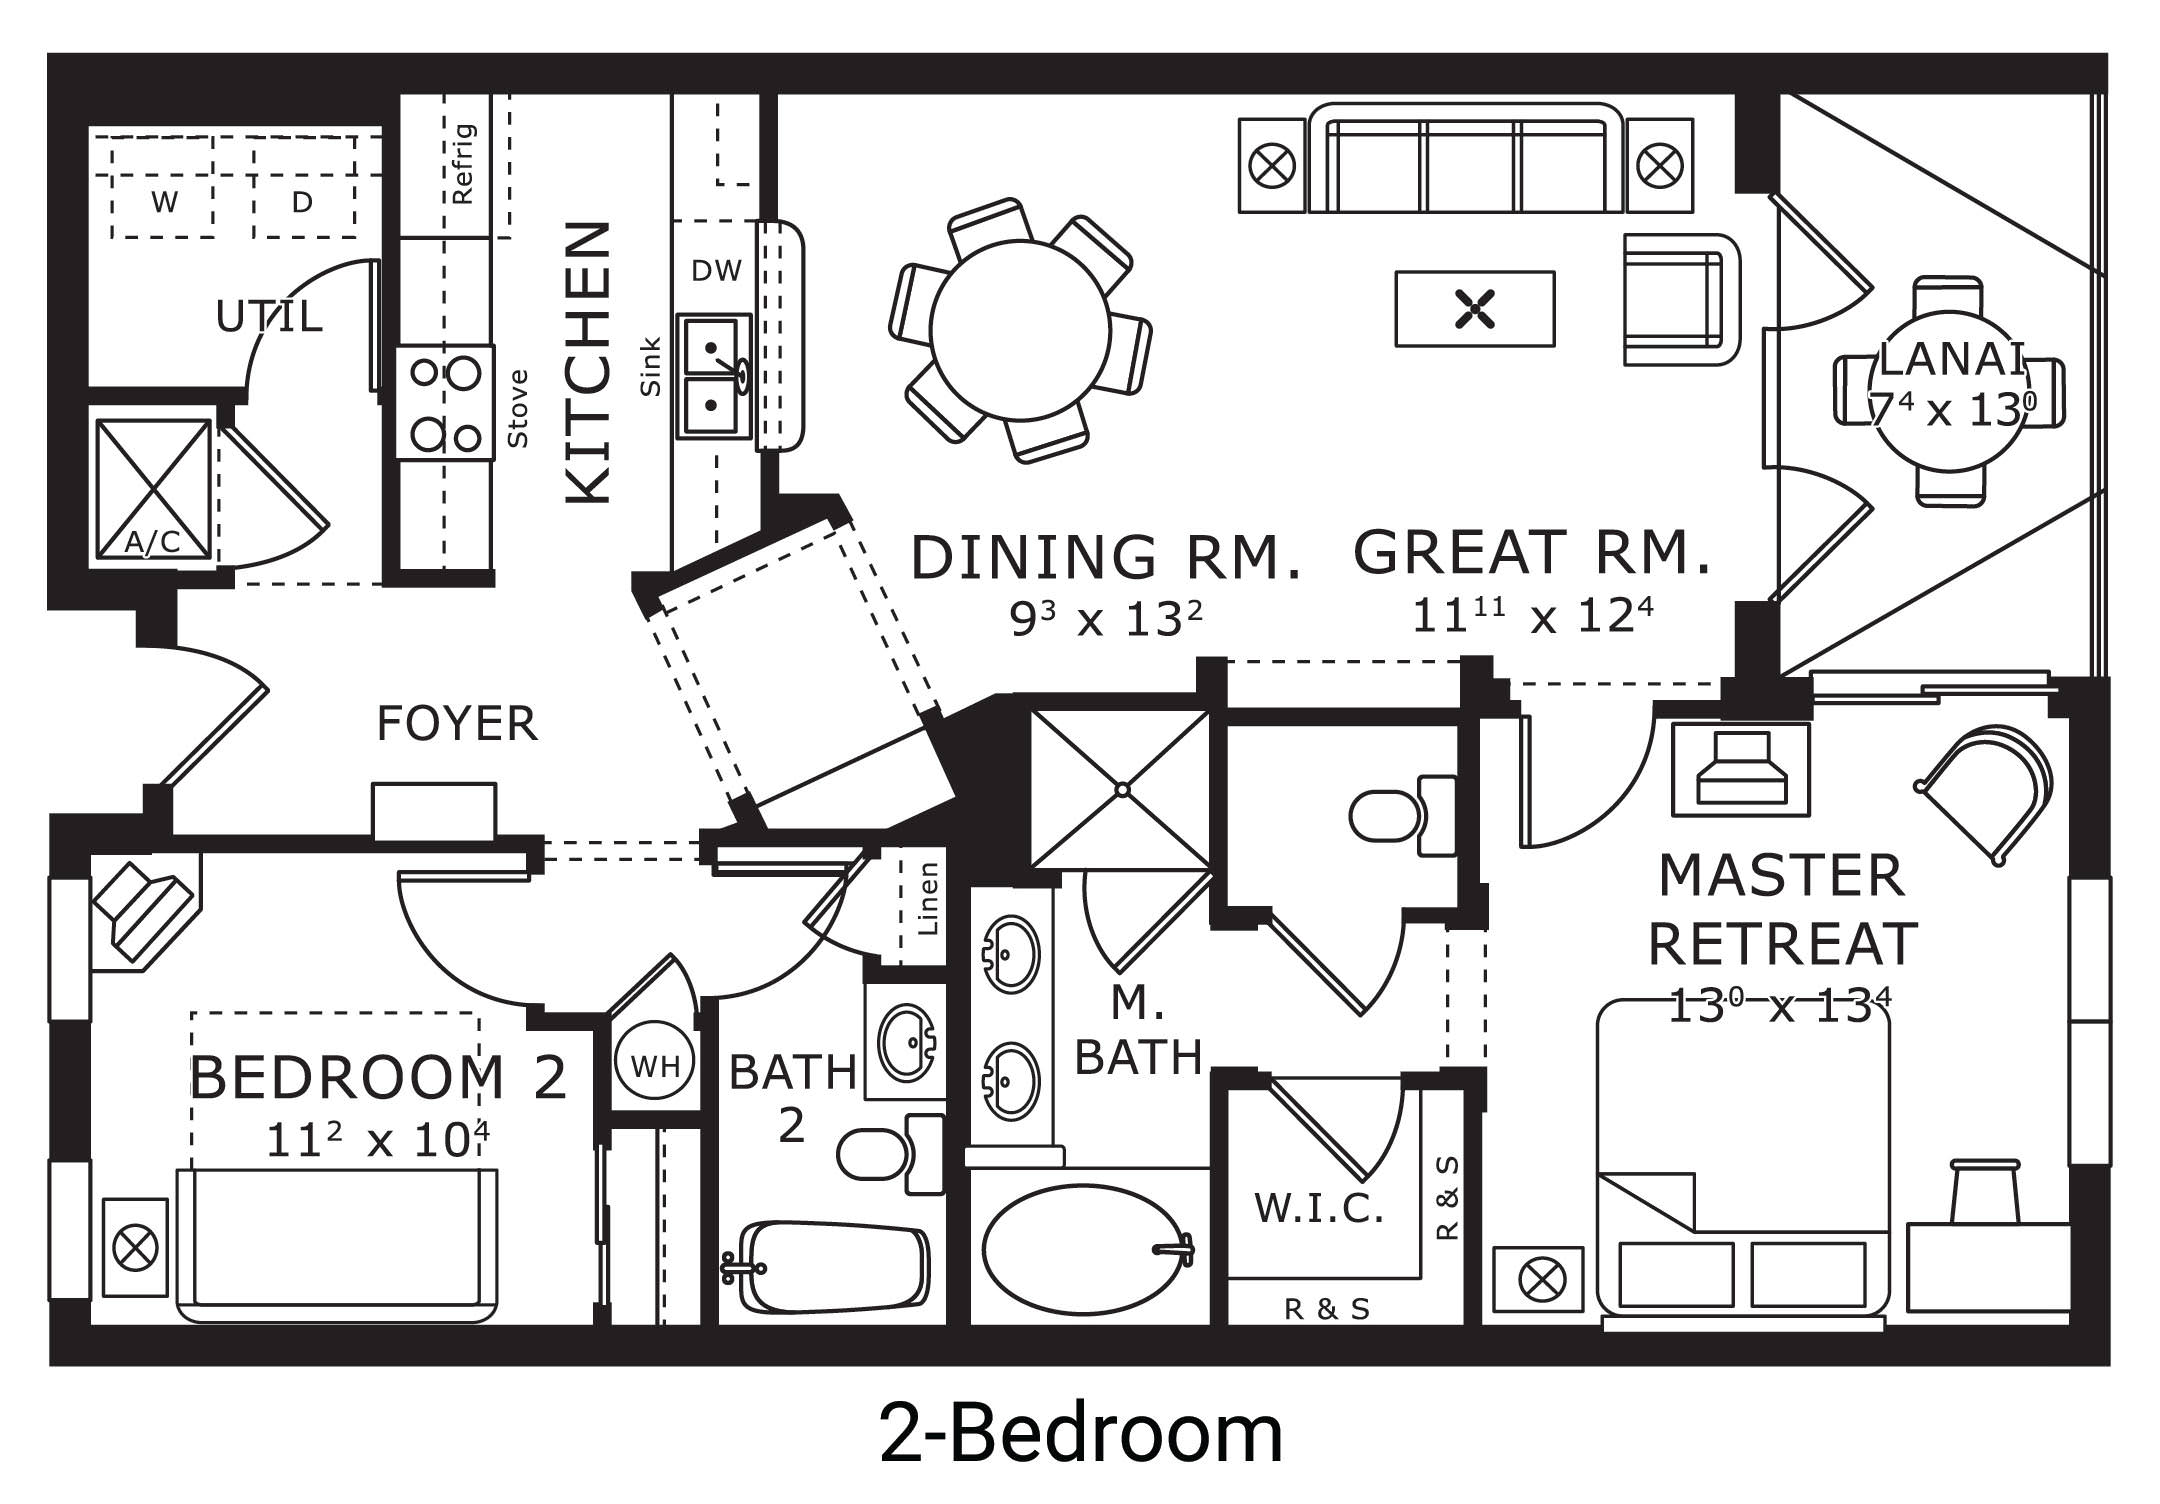 floor plan map for two bedroom, The Berkley, Orlando